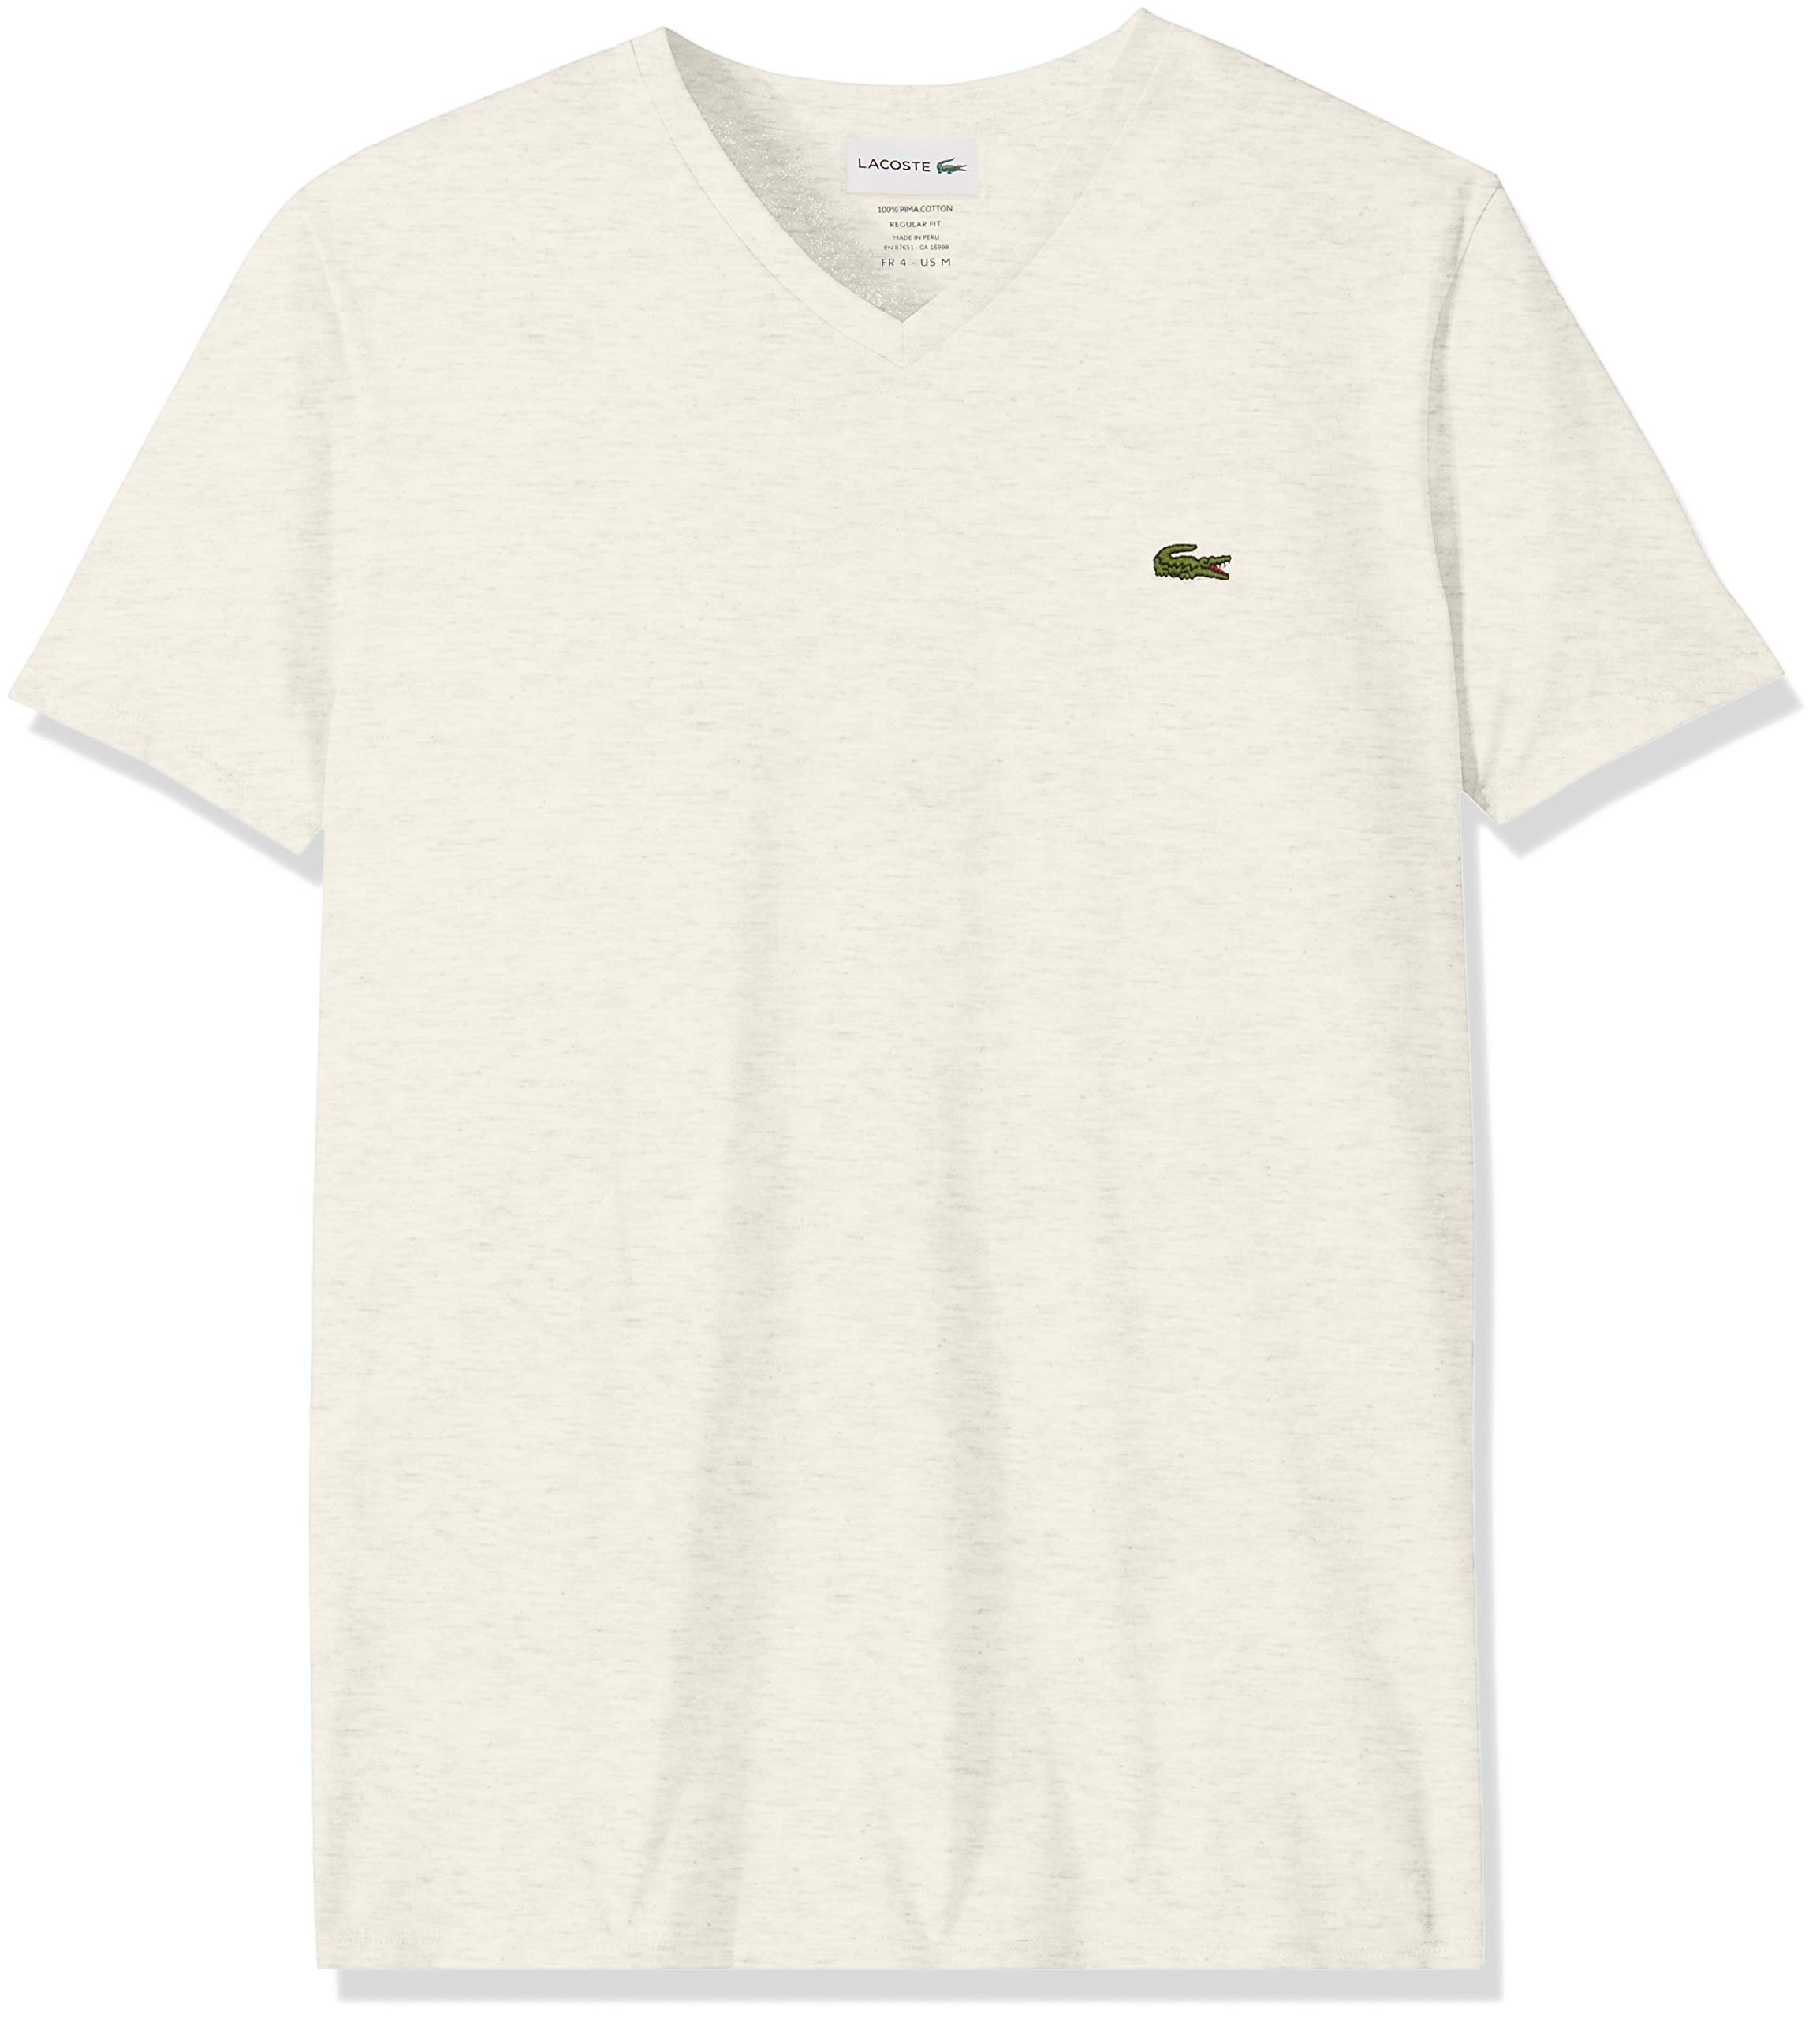 Lacoste Men's S/S V Neck PIMA Jersey T-Shirt, Alpes